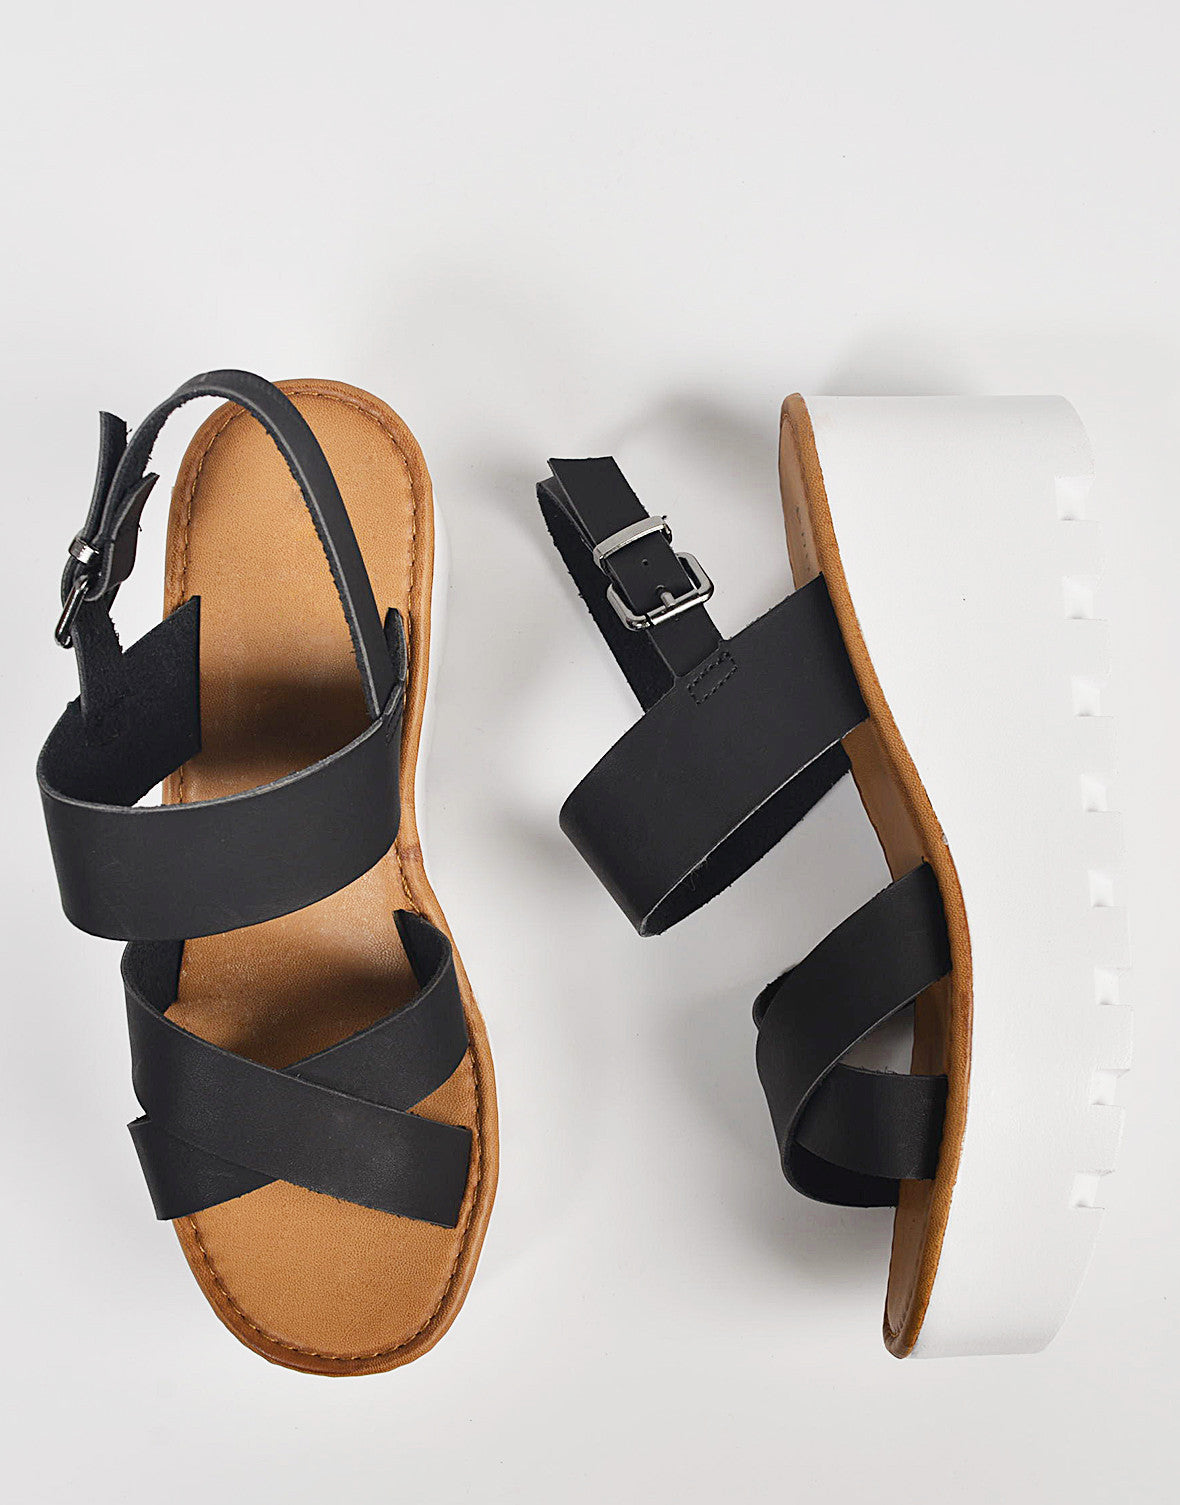 Top View of Crossover Slingback Wedge Sandals